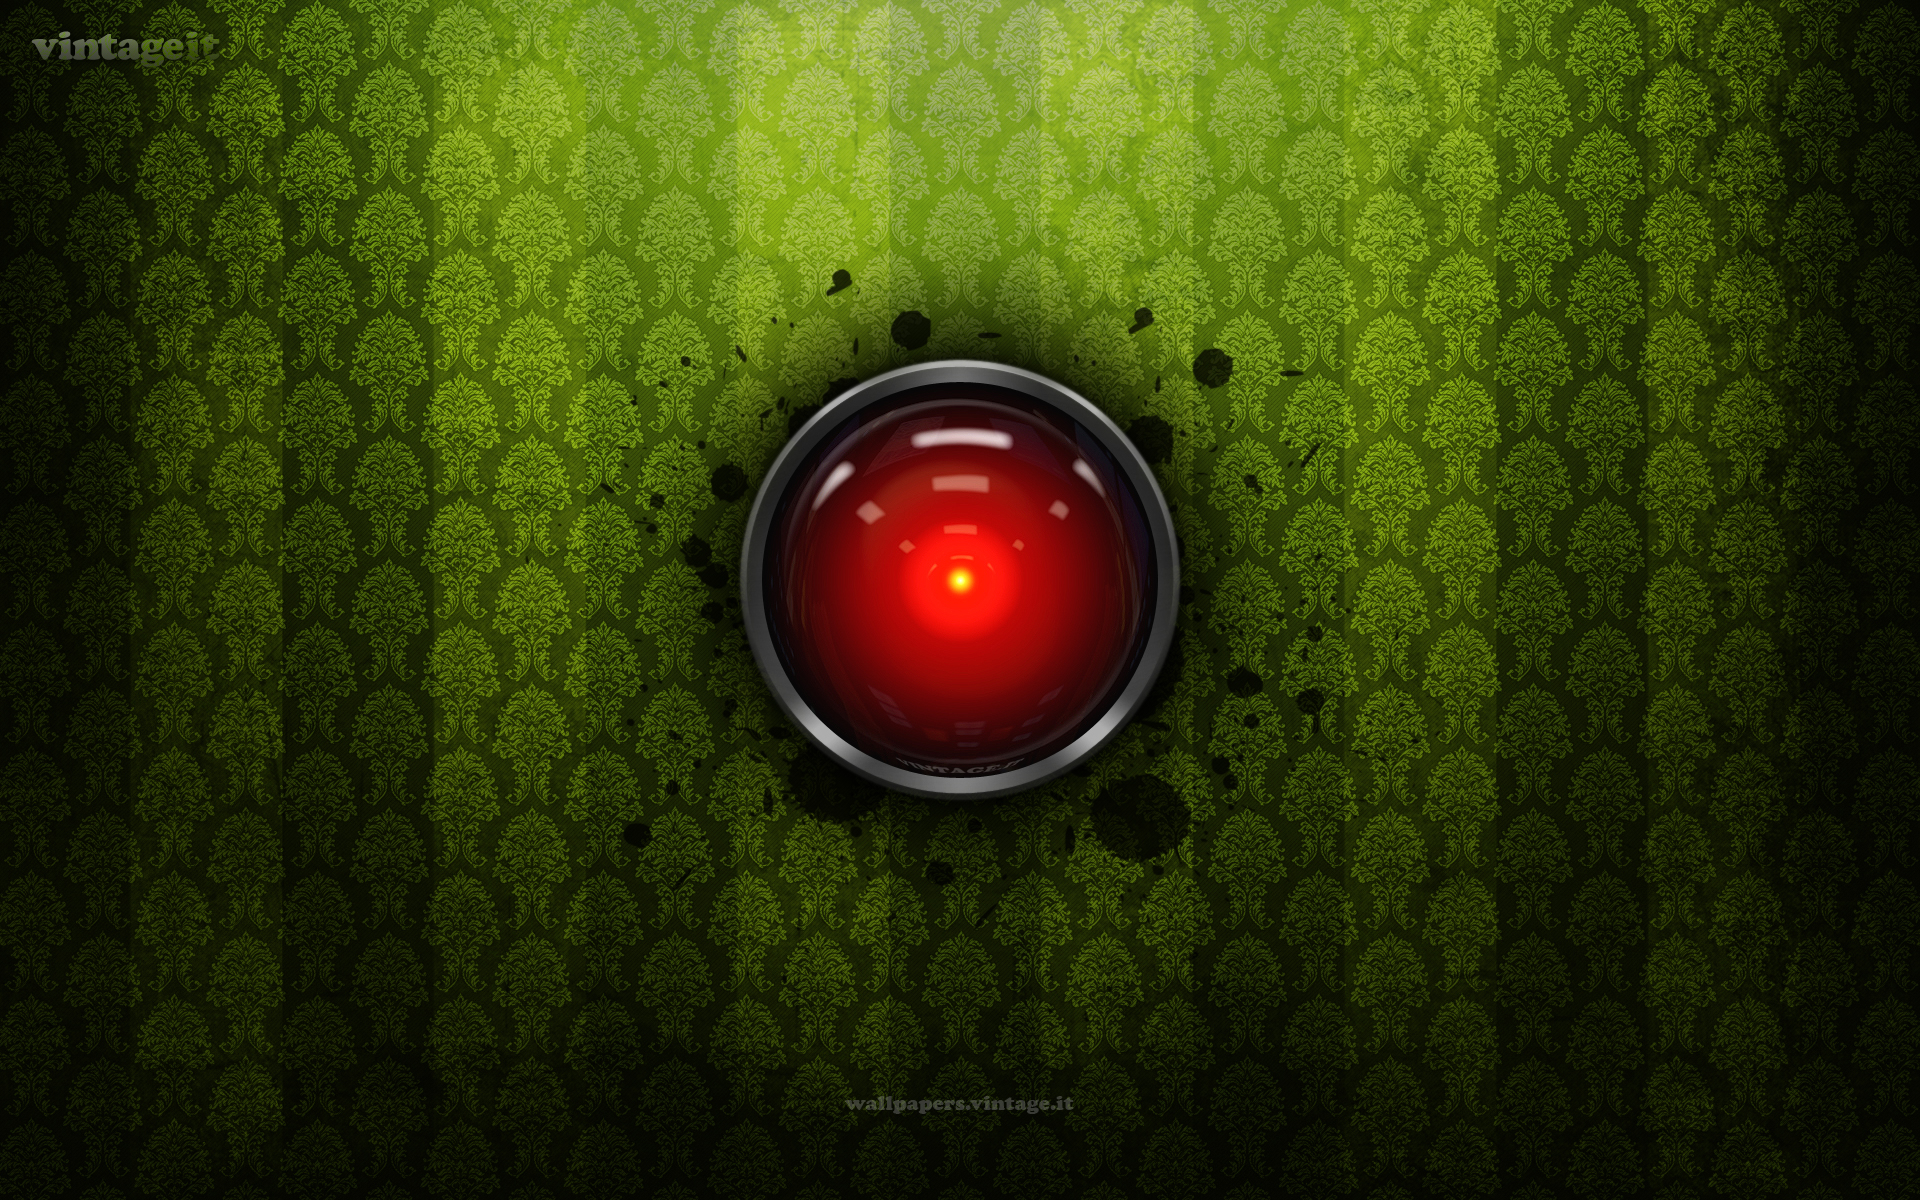 hal 9000 vintage wallpaper free desktop hd ipad iphone